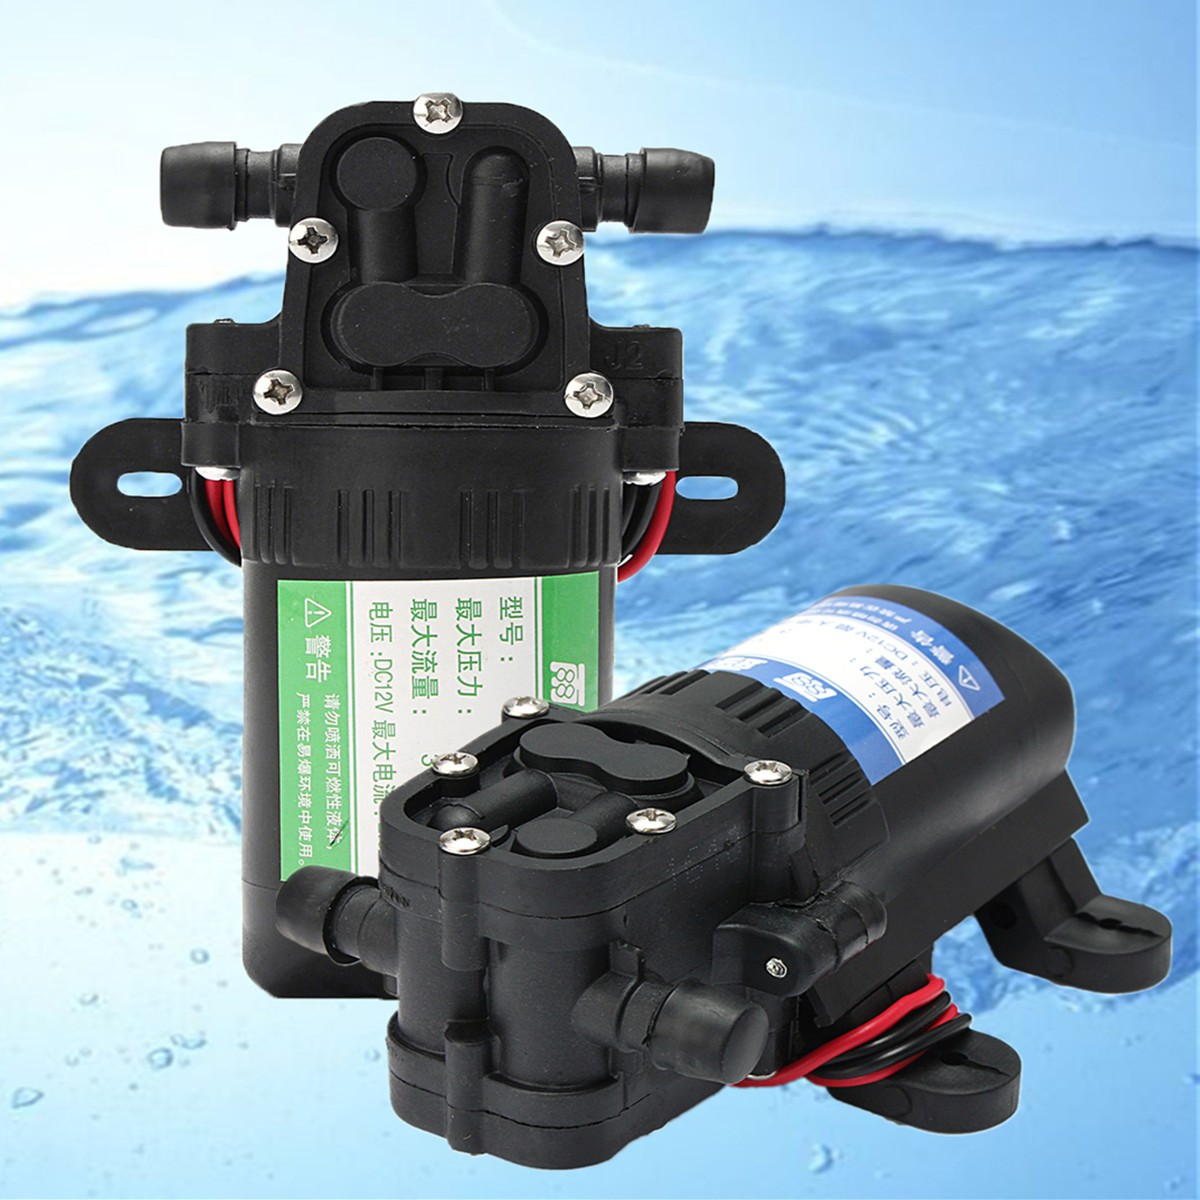 DC 12V 70PSI 3.5L/min Agricultural Electric Water Pump Black Micro High Pressure Diaphragm Water Sprayer Car Wash 12 V 0.48 image